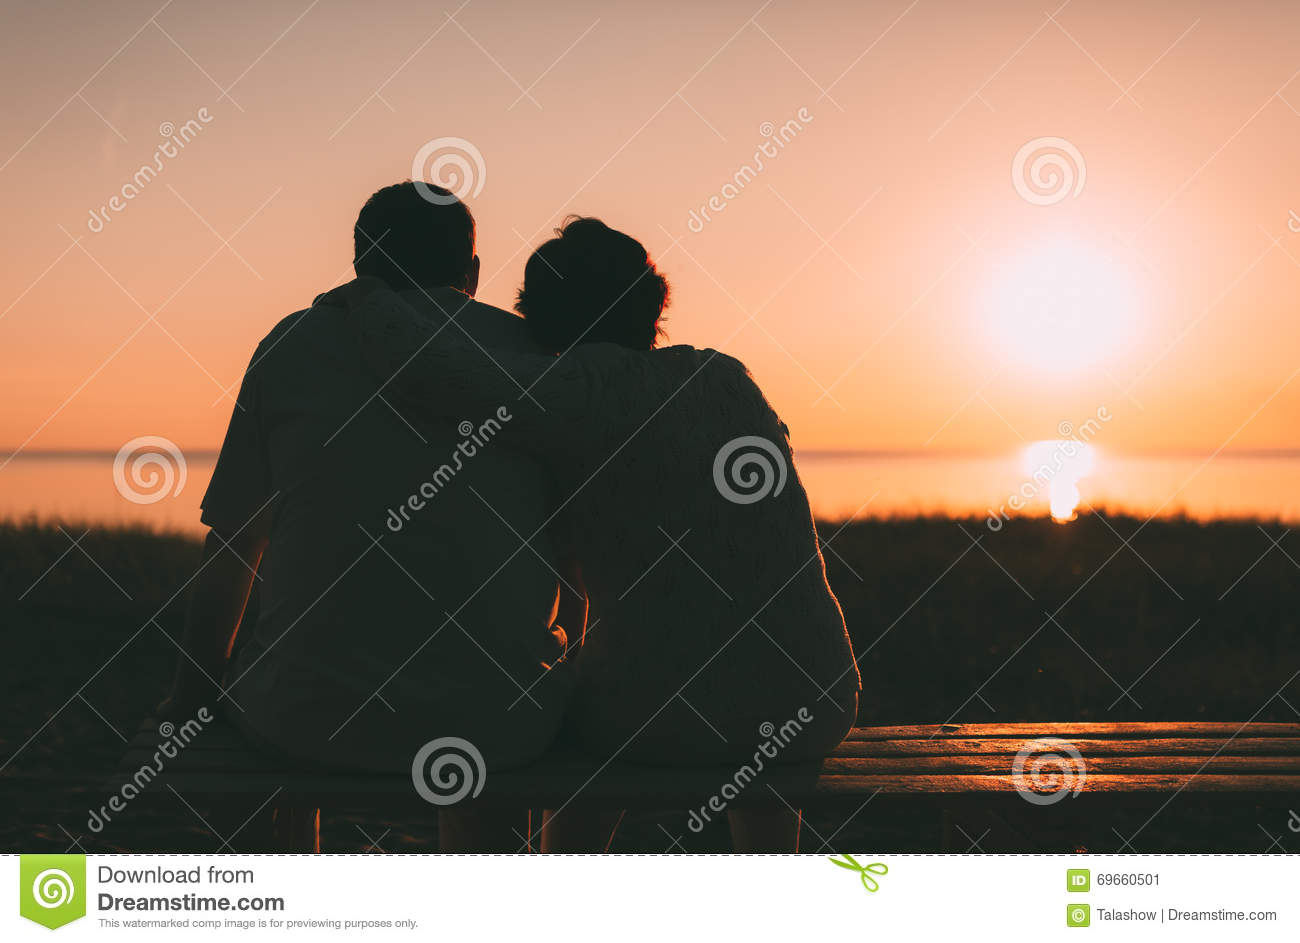 Back View A Married Couple A Silhouette Sitting On A Bench. Stock ... for bench silhouette back  143gtk